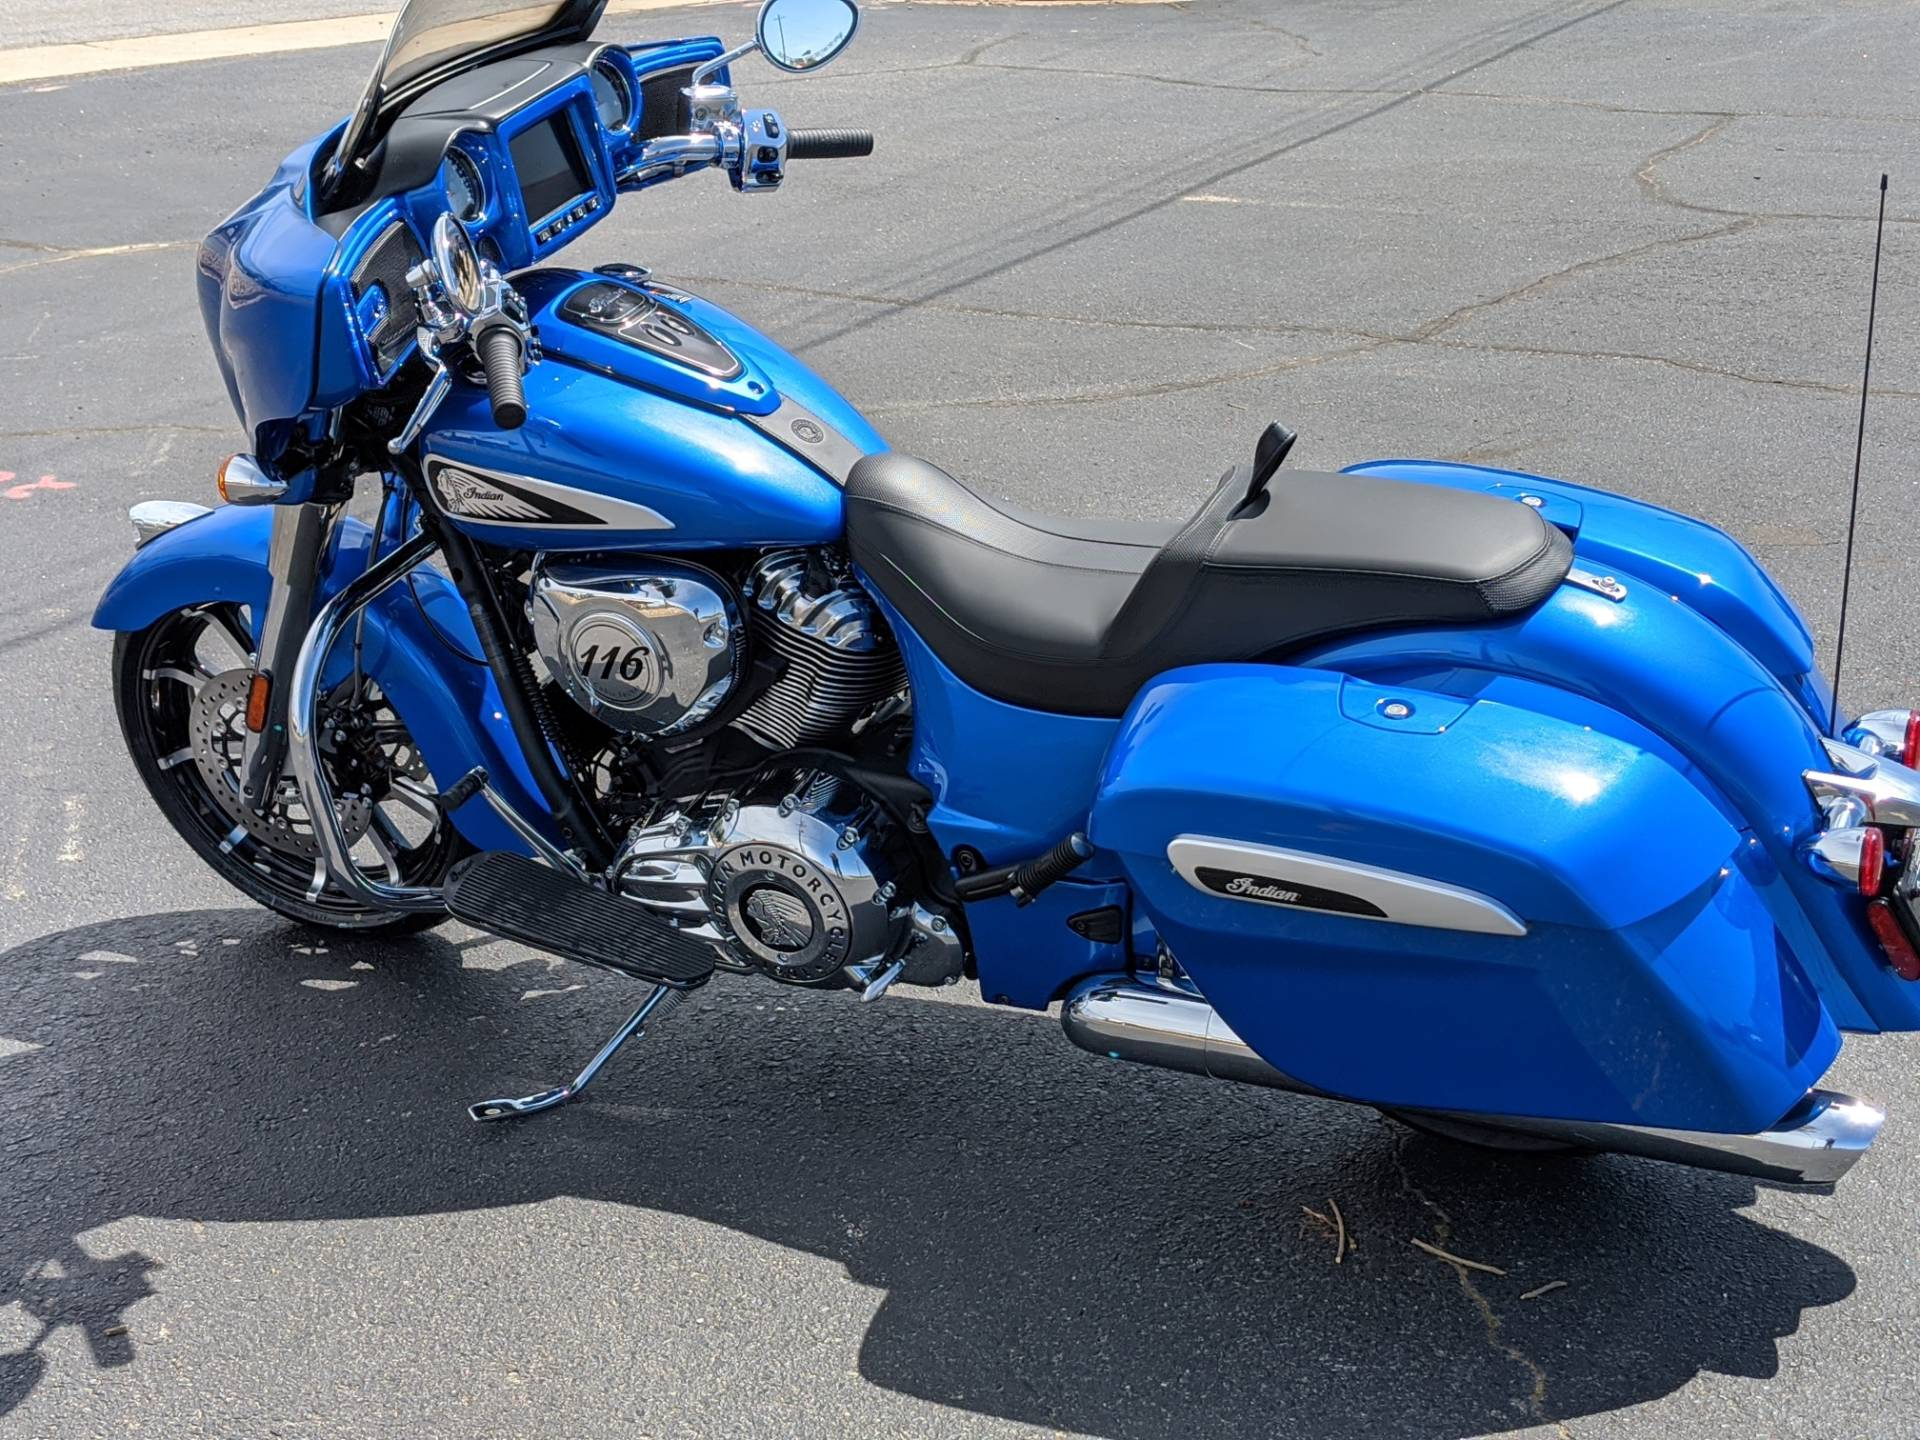 2020 Indian Chieftain Limited - Photo 6